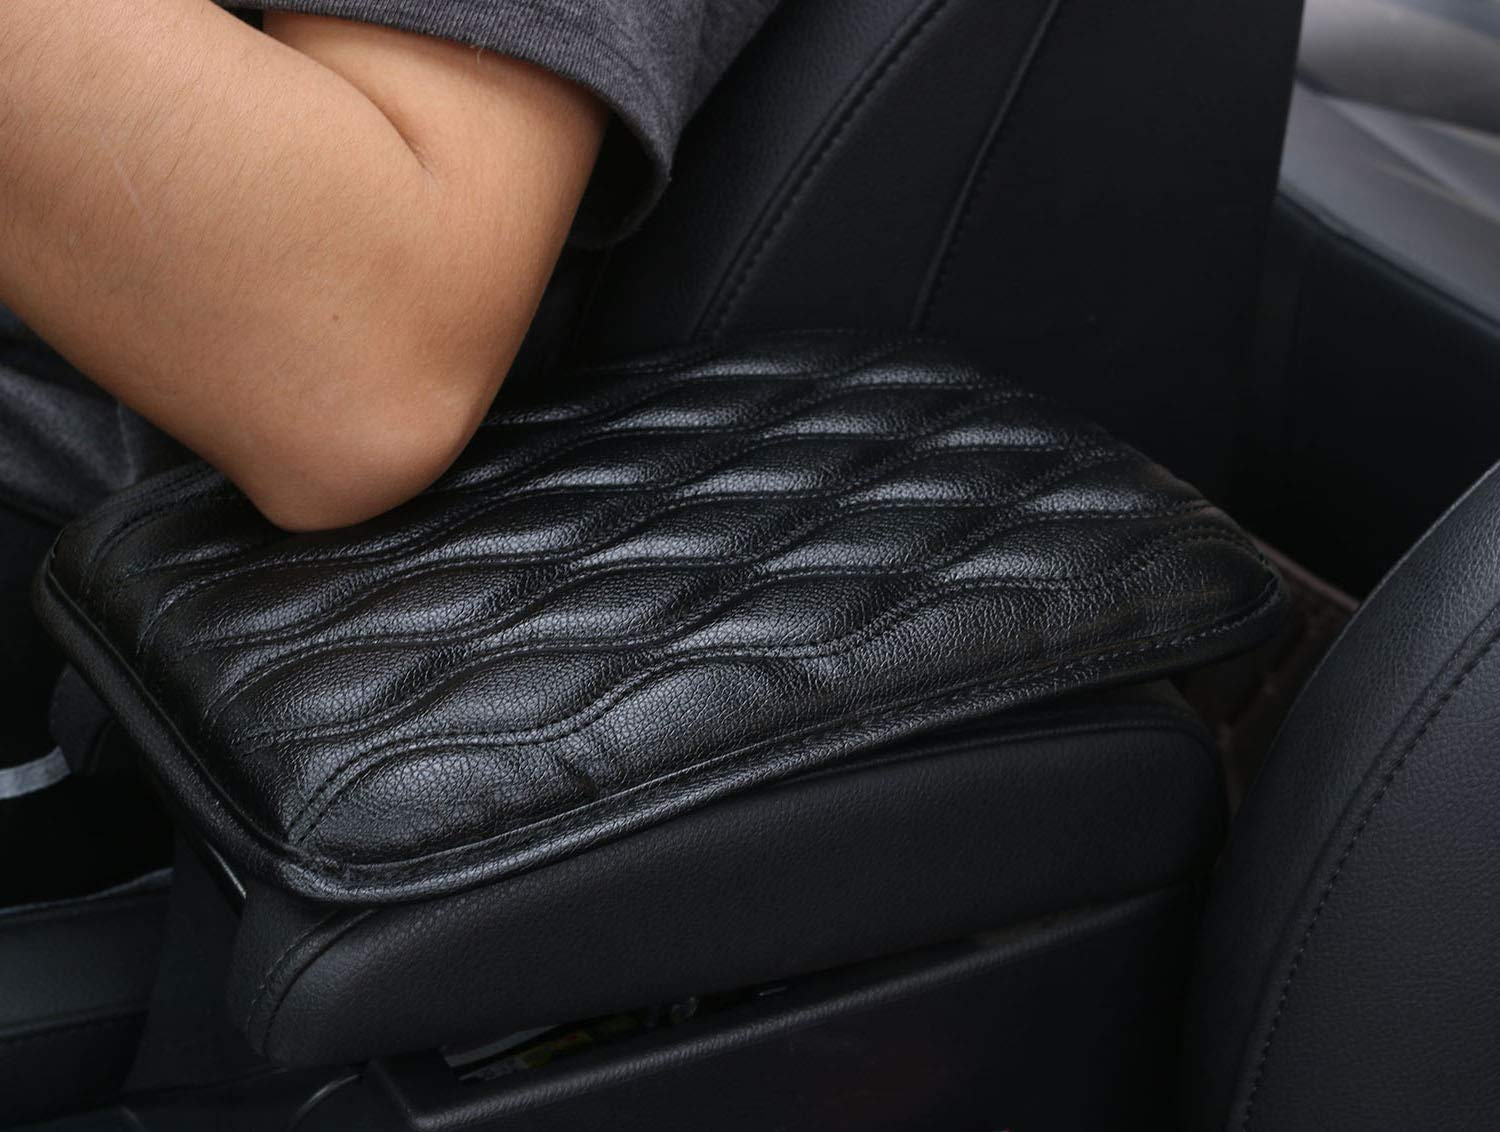 Dotesy Auto Center Console Cover Armrest Pads, PU Leather Universal Car Center Console Box Arm Rest Pads Cushion Protector (Black)